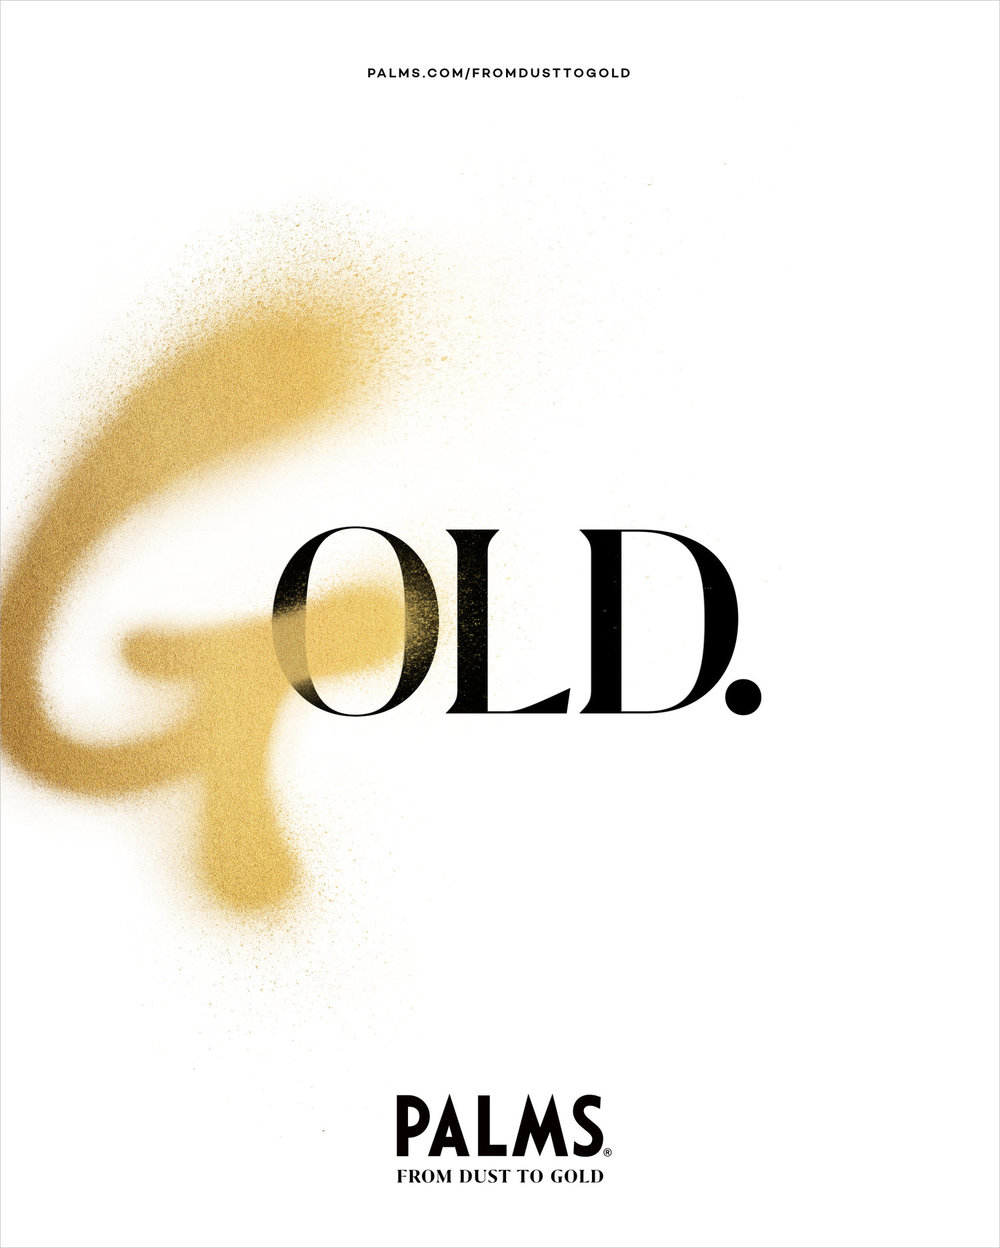 5_Palms-Print-Gold+copy.jpg